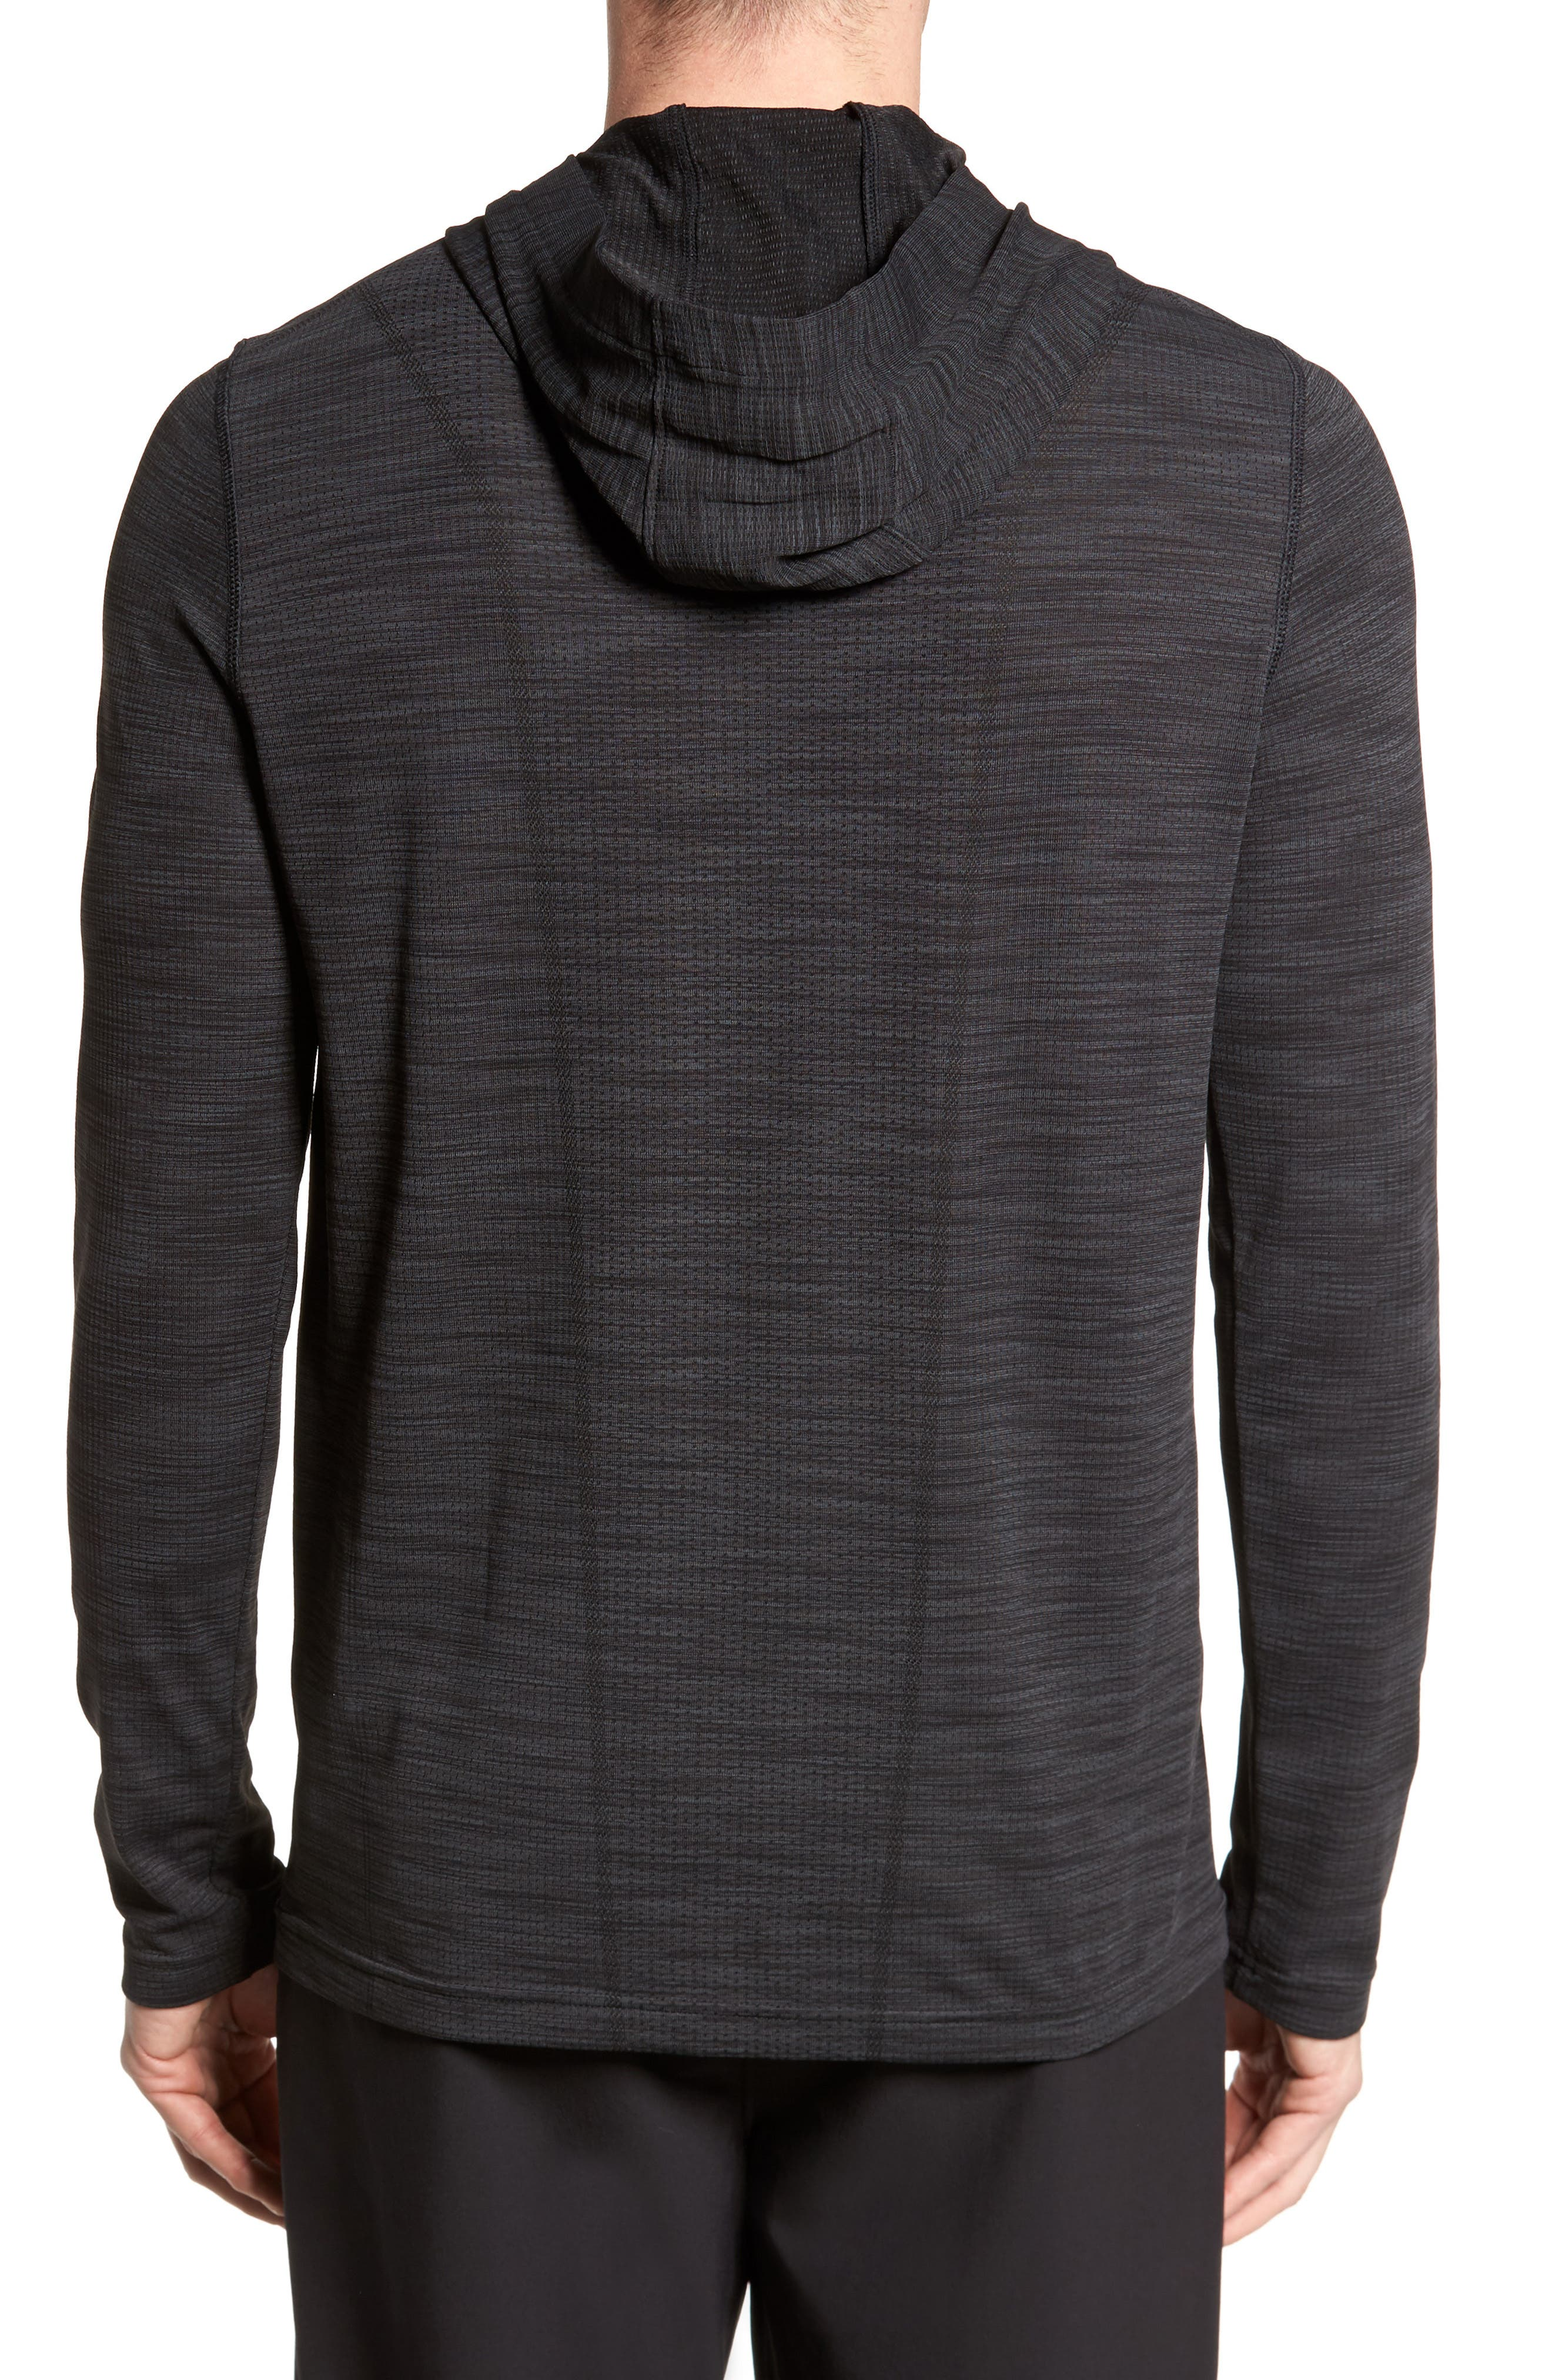 Threadbone Fitted Seamless Hoodie,                             Alternate thumbnail 7, color,